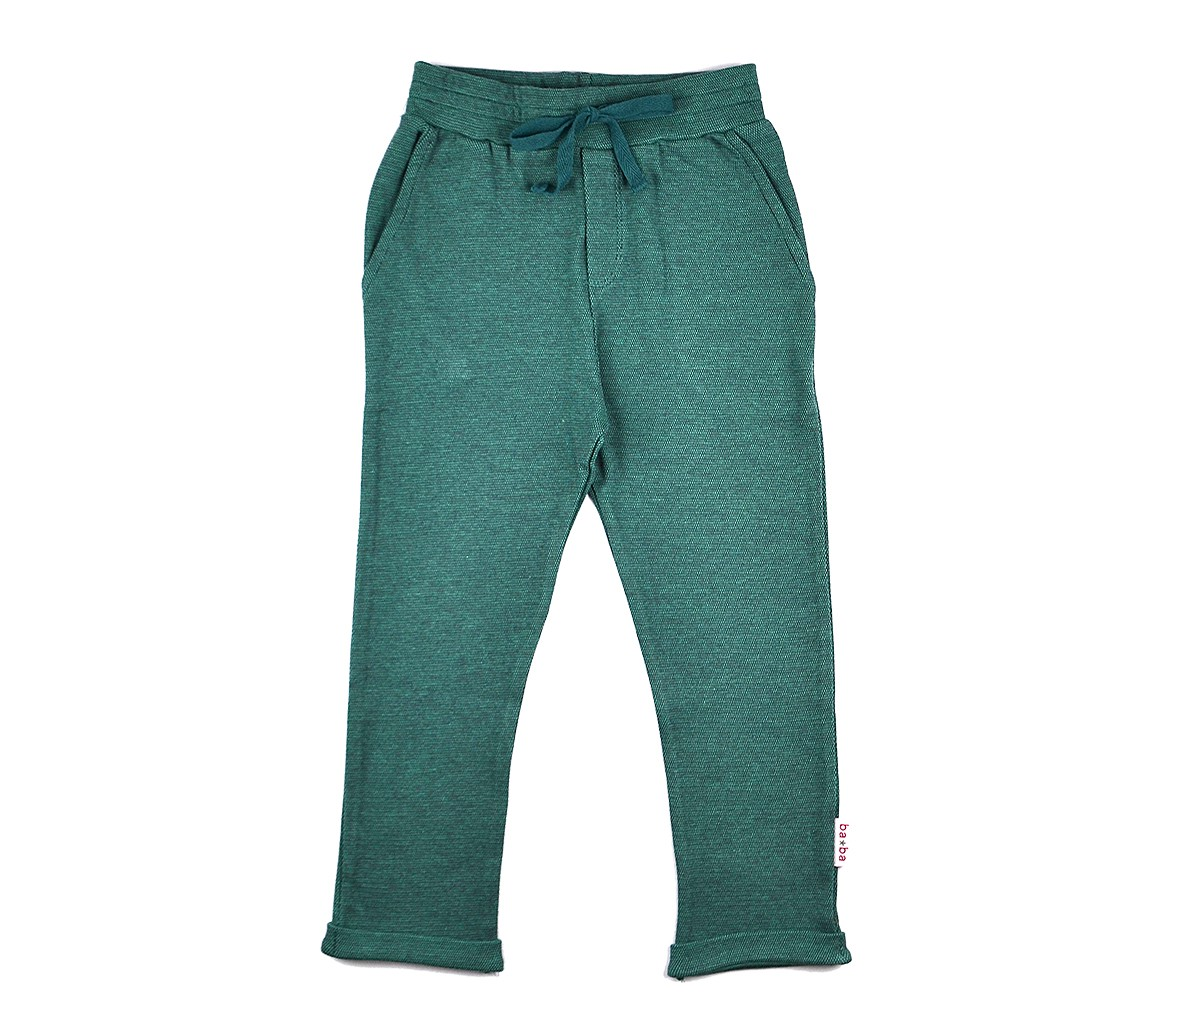 Chino pants green